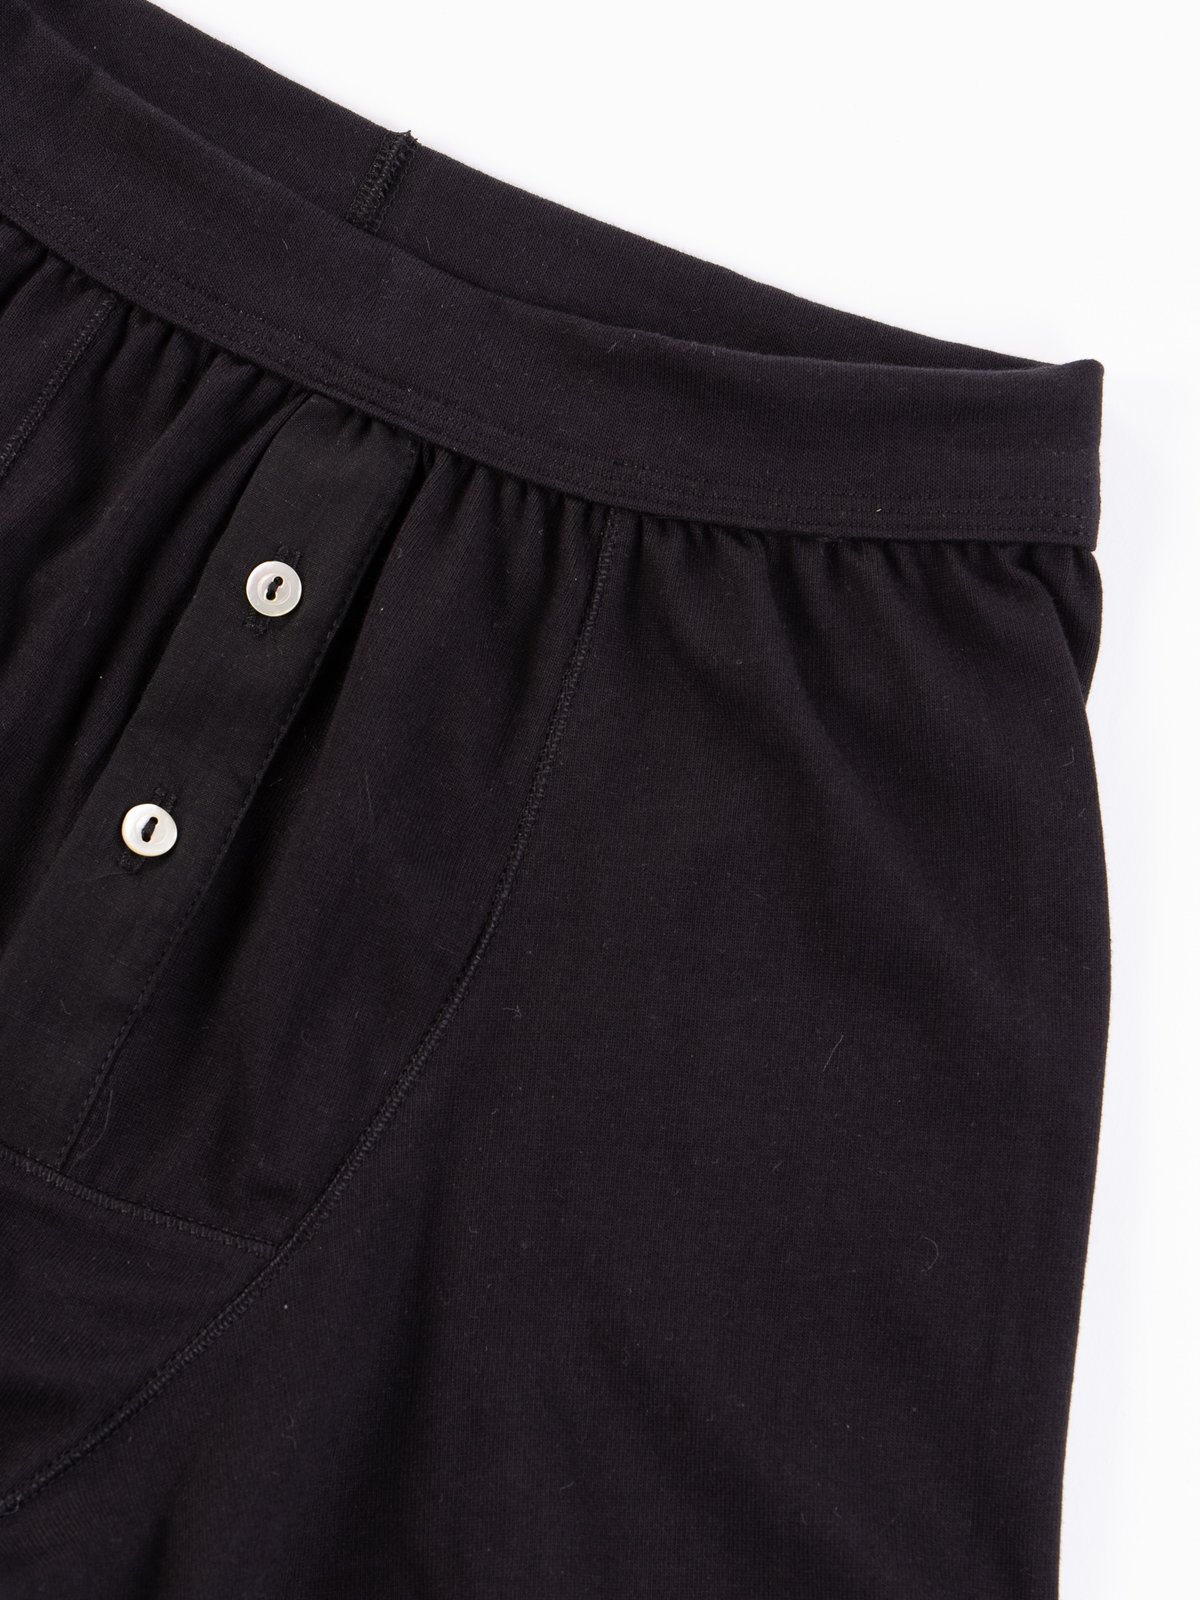 Black 255 Button Fly Boxer - Image 2